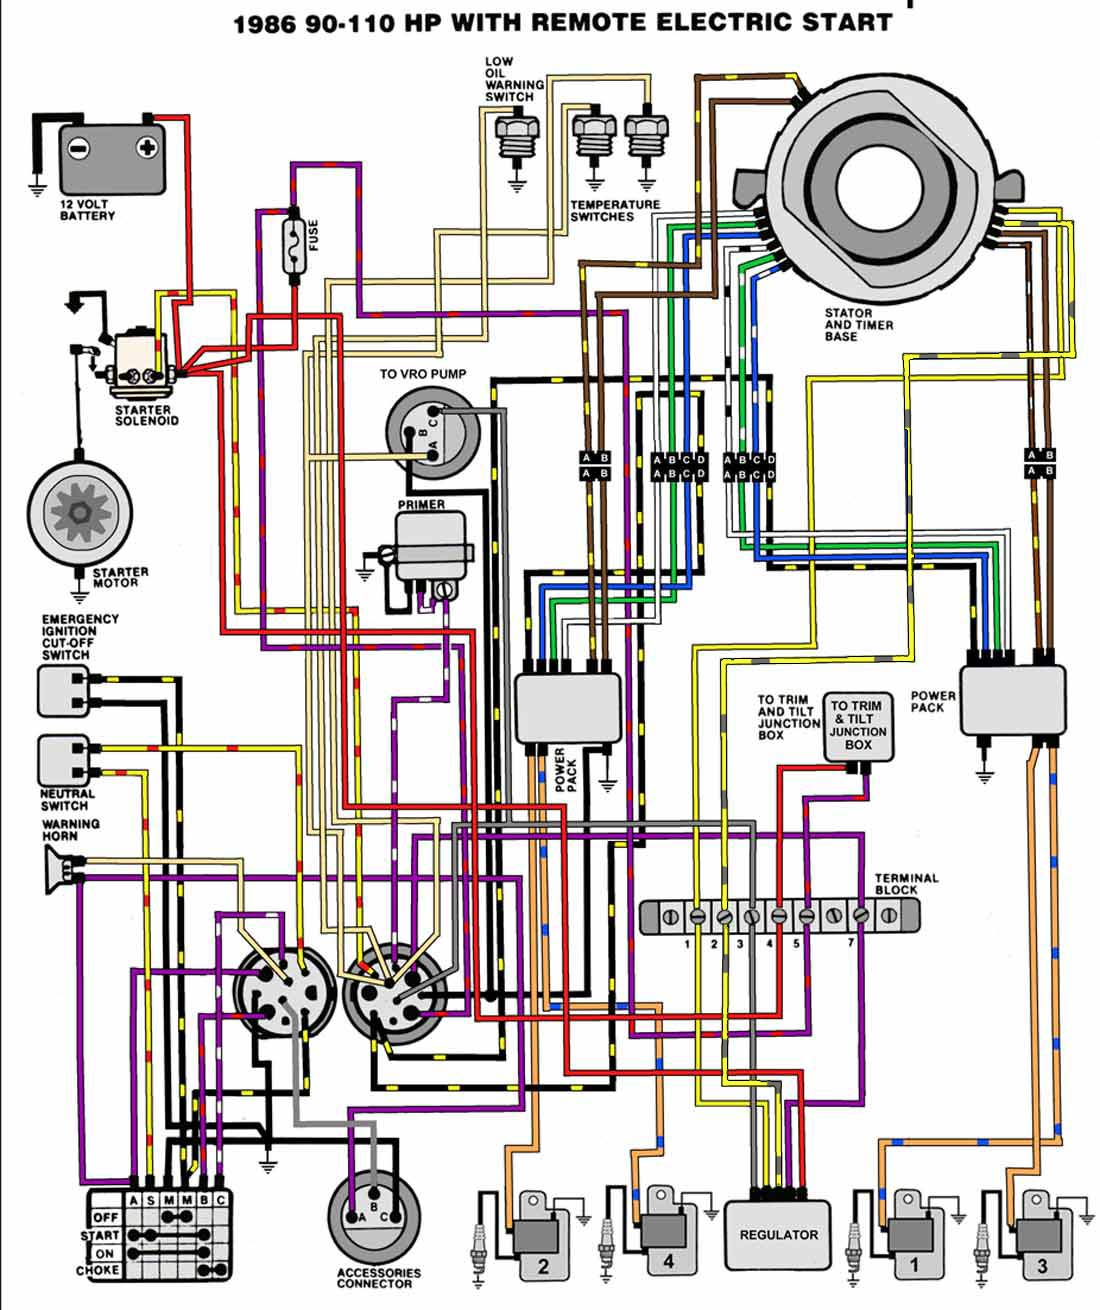 DIAGRAM] 35 Hp Johnson 3 Cyl Wiring Diagram FULL Version HD Quality Wiring  Diagram - MOBULEPLANET.UBB-PICARDIE.FRmobuleplanet.ubb-picardie.fr